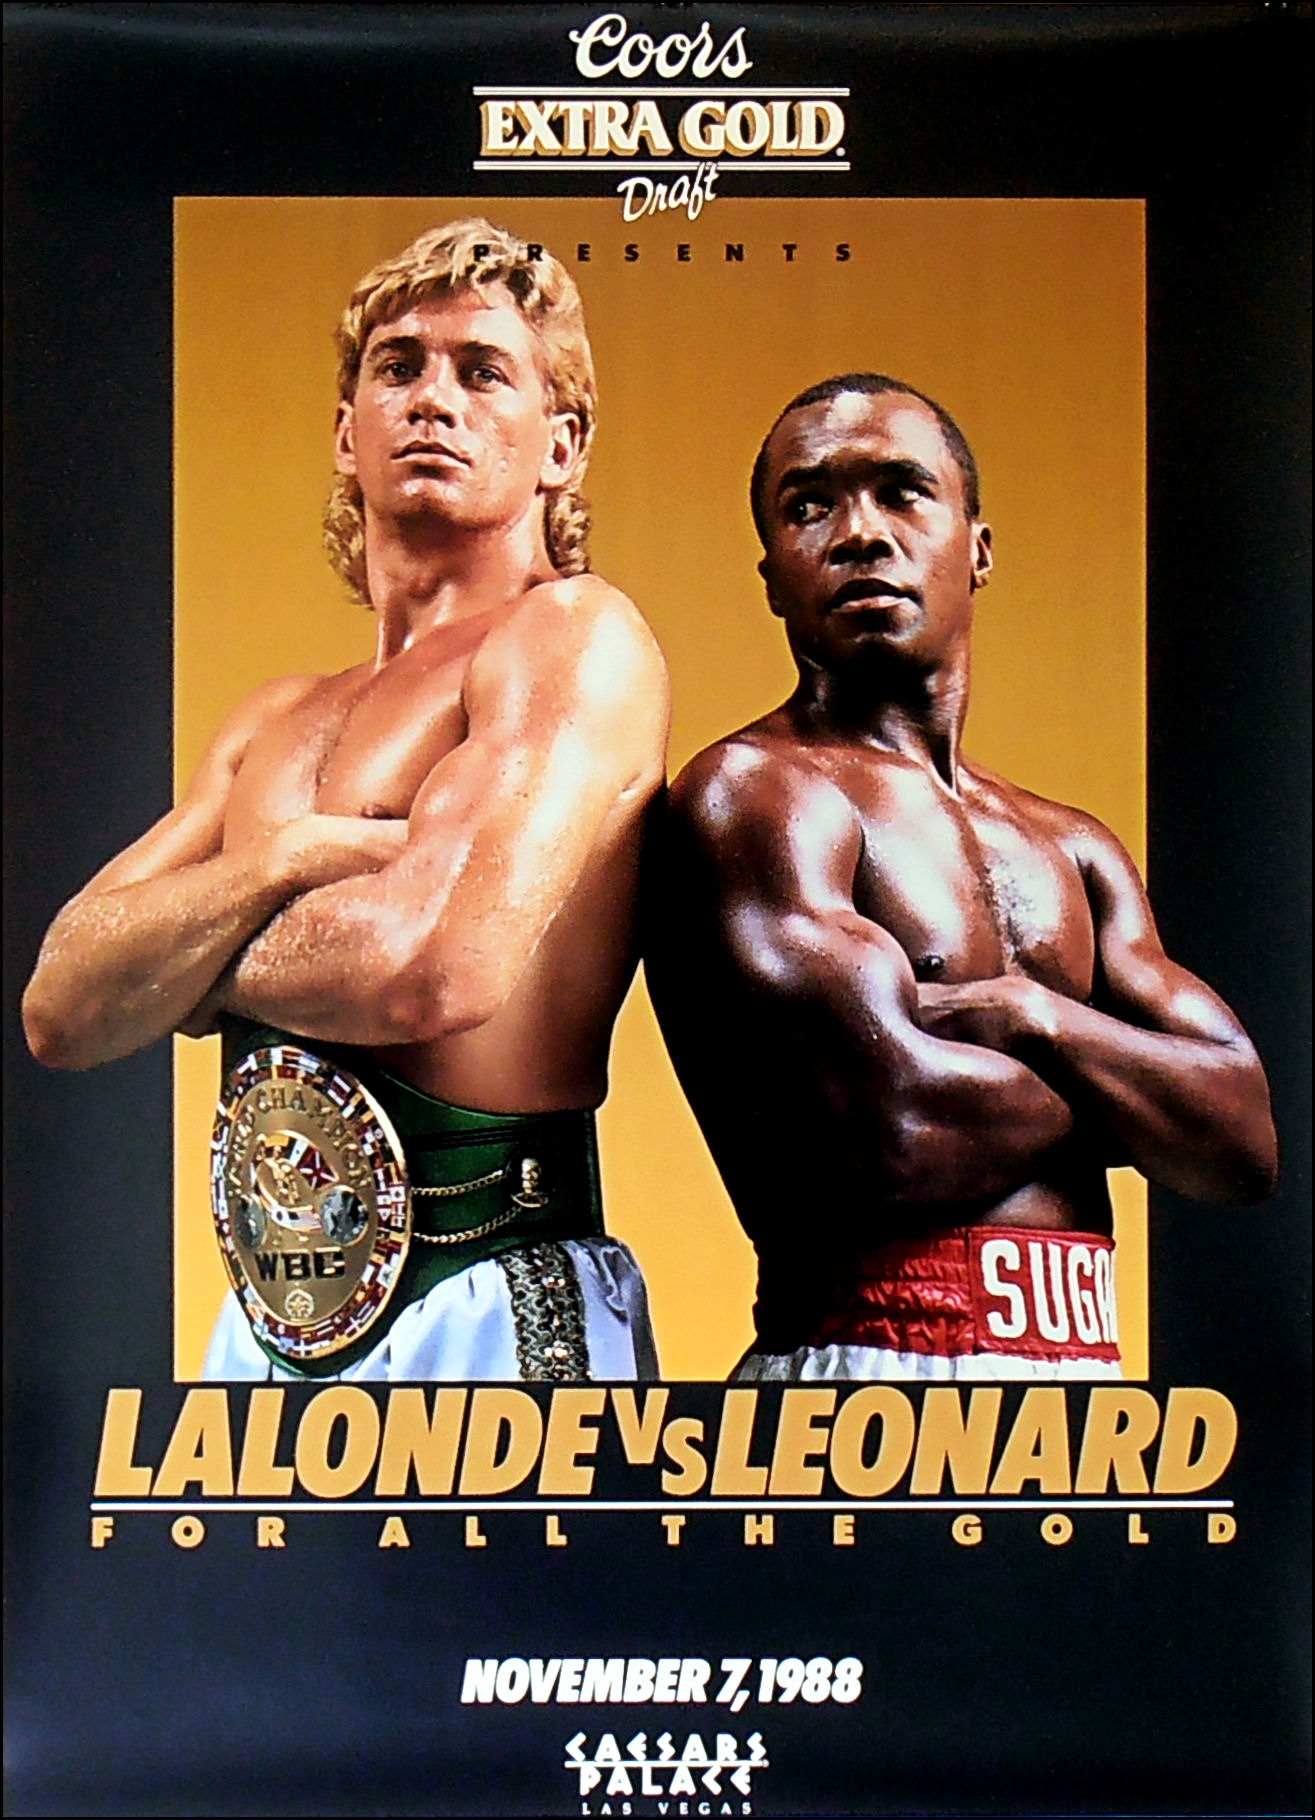 Sugar Ray Leonard (right) vs. Donny Lalonde